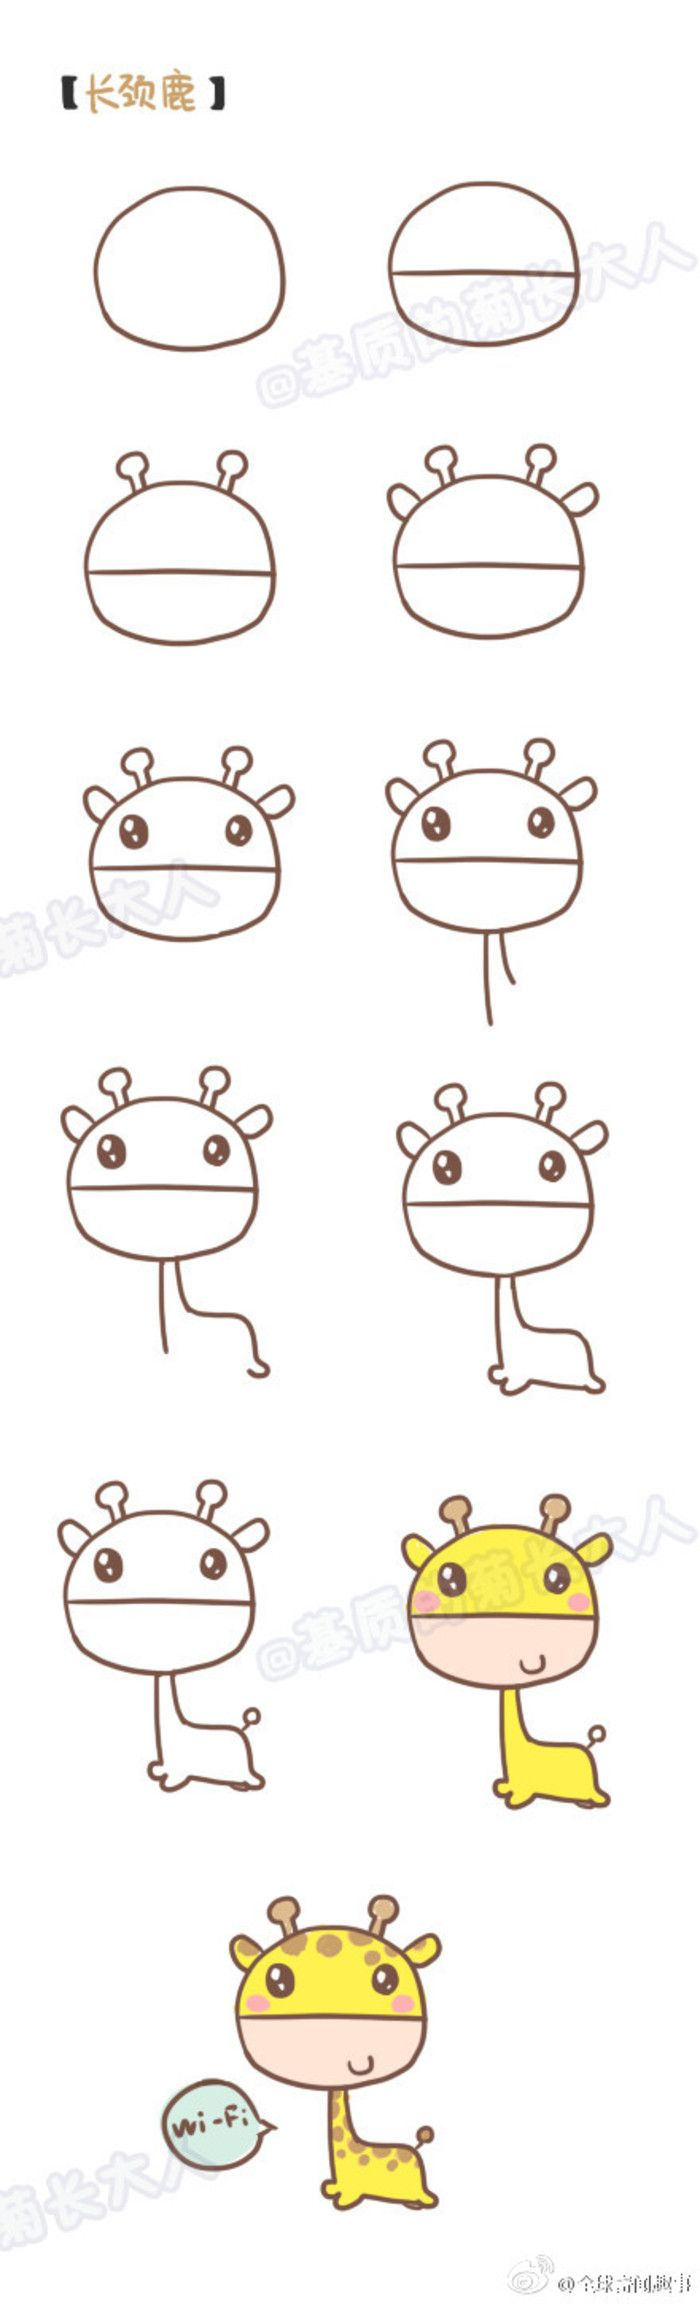 25 best ideas about kawaii doodles on pinterest kawaii for Cute simple drawings